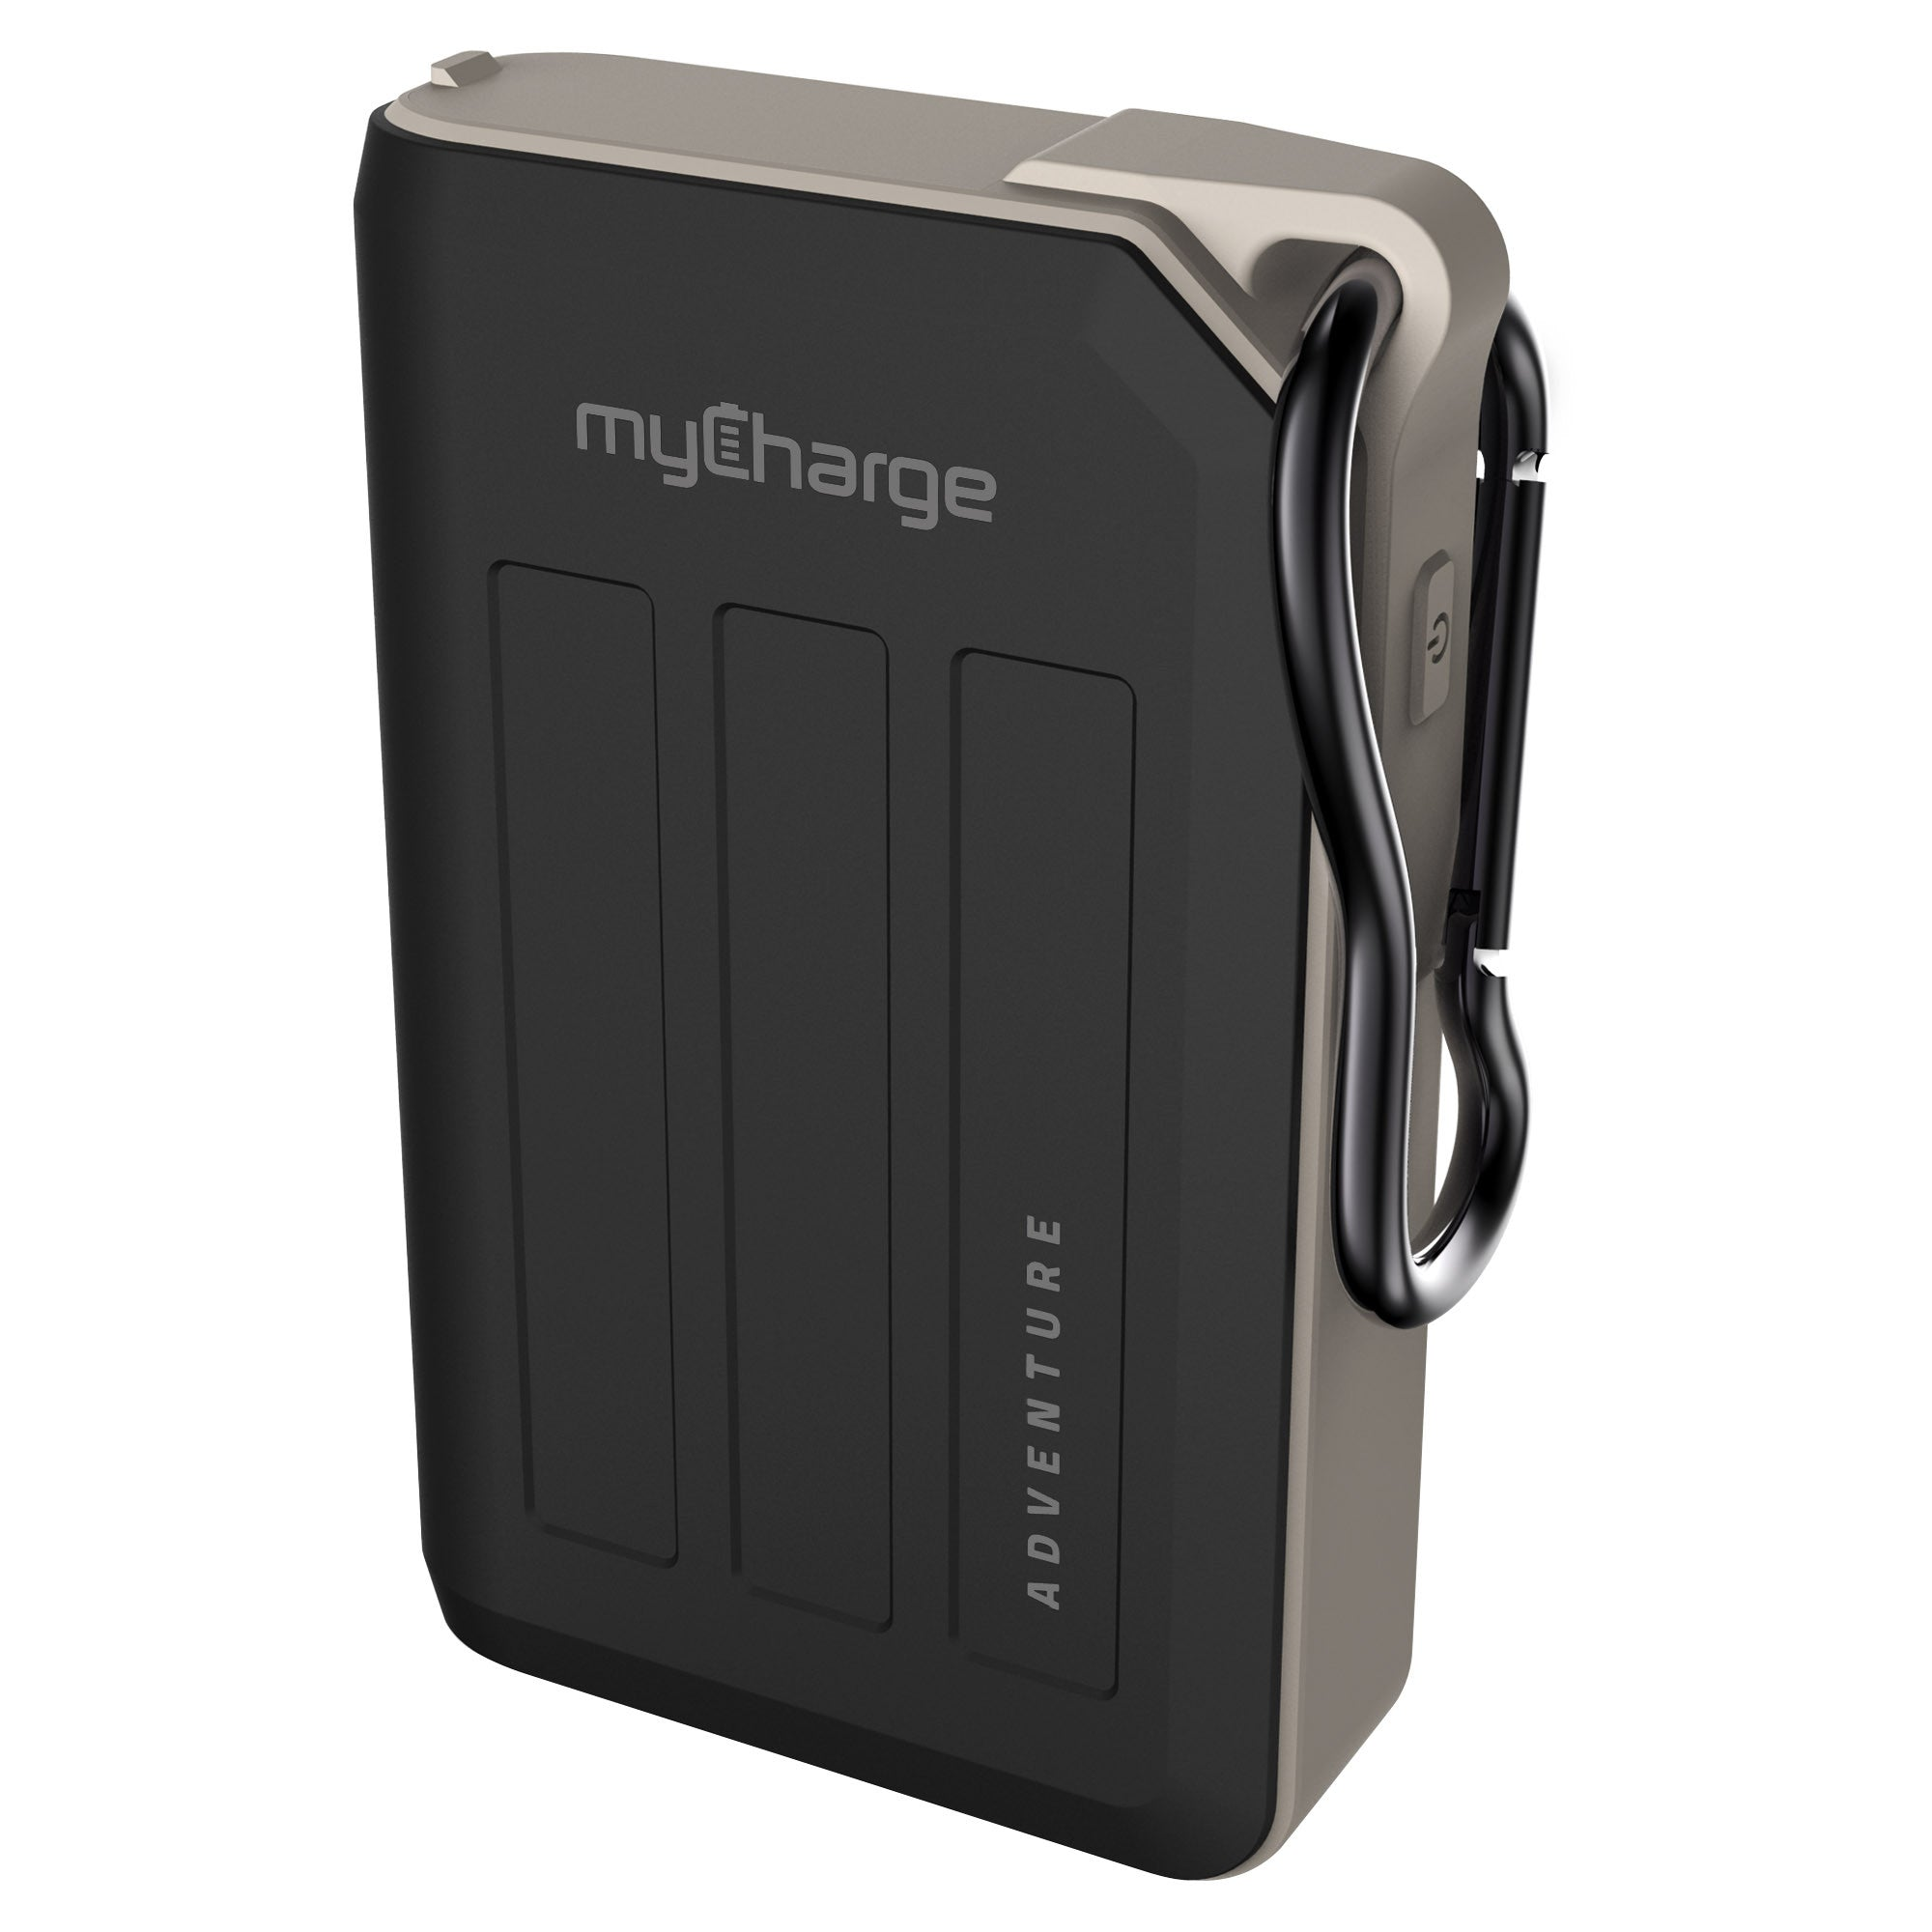 Adventuremax Portable Smartphone Tablet Charger Free Shipping Samsungampnbsp Galaxy Note 4 Hero 10050mah